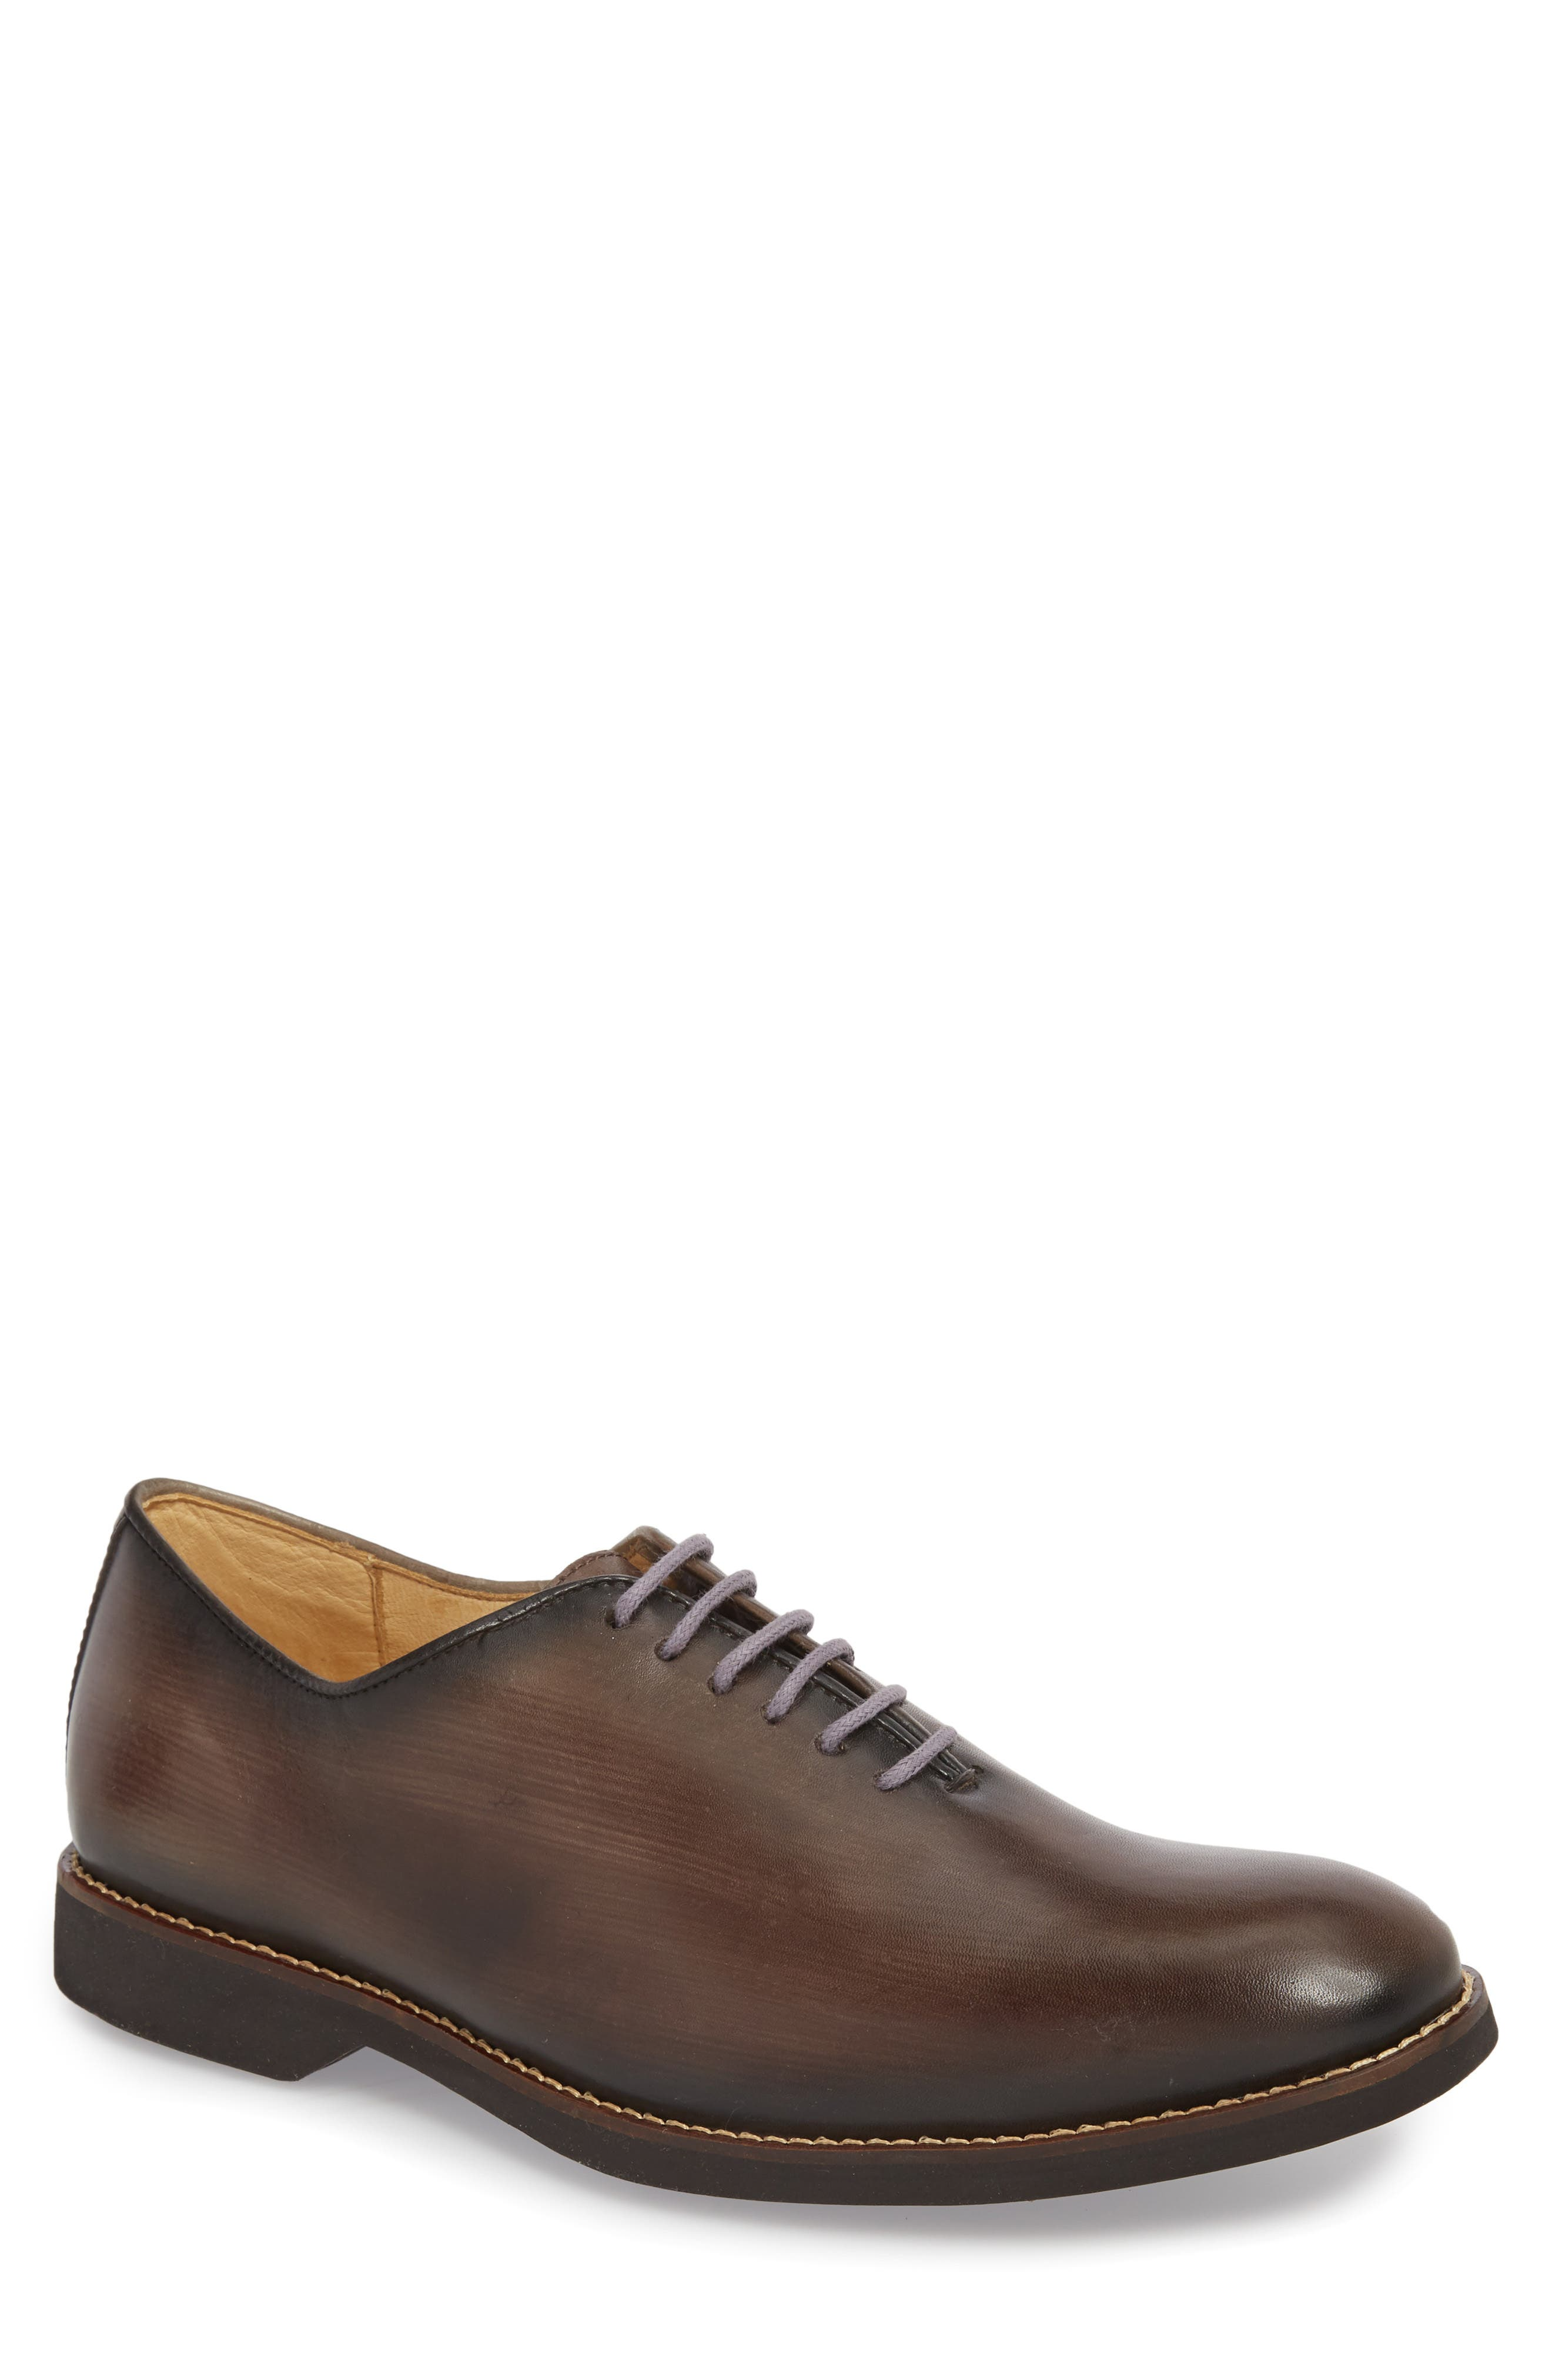 Sao Paulo II Whole Cut Shoe,                         Main,                         color, TOUCH GREY BRUSHED LEATHER